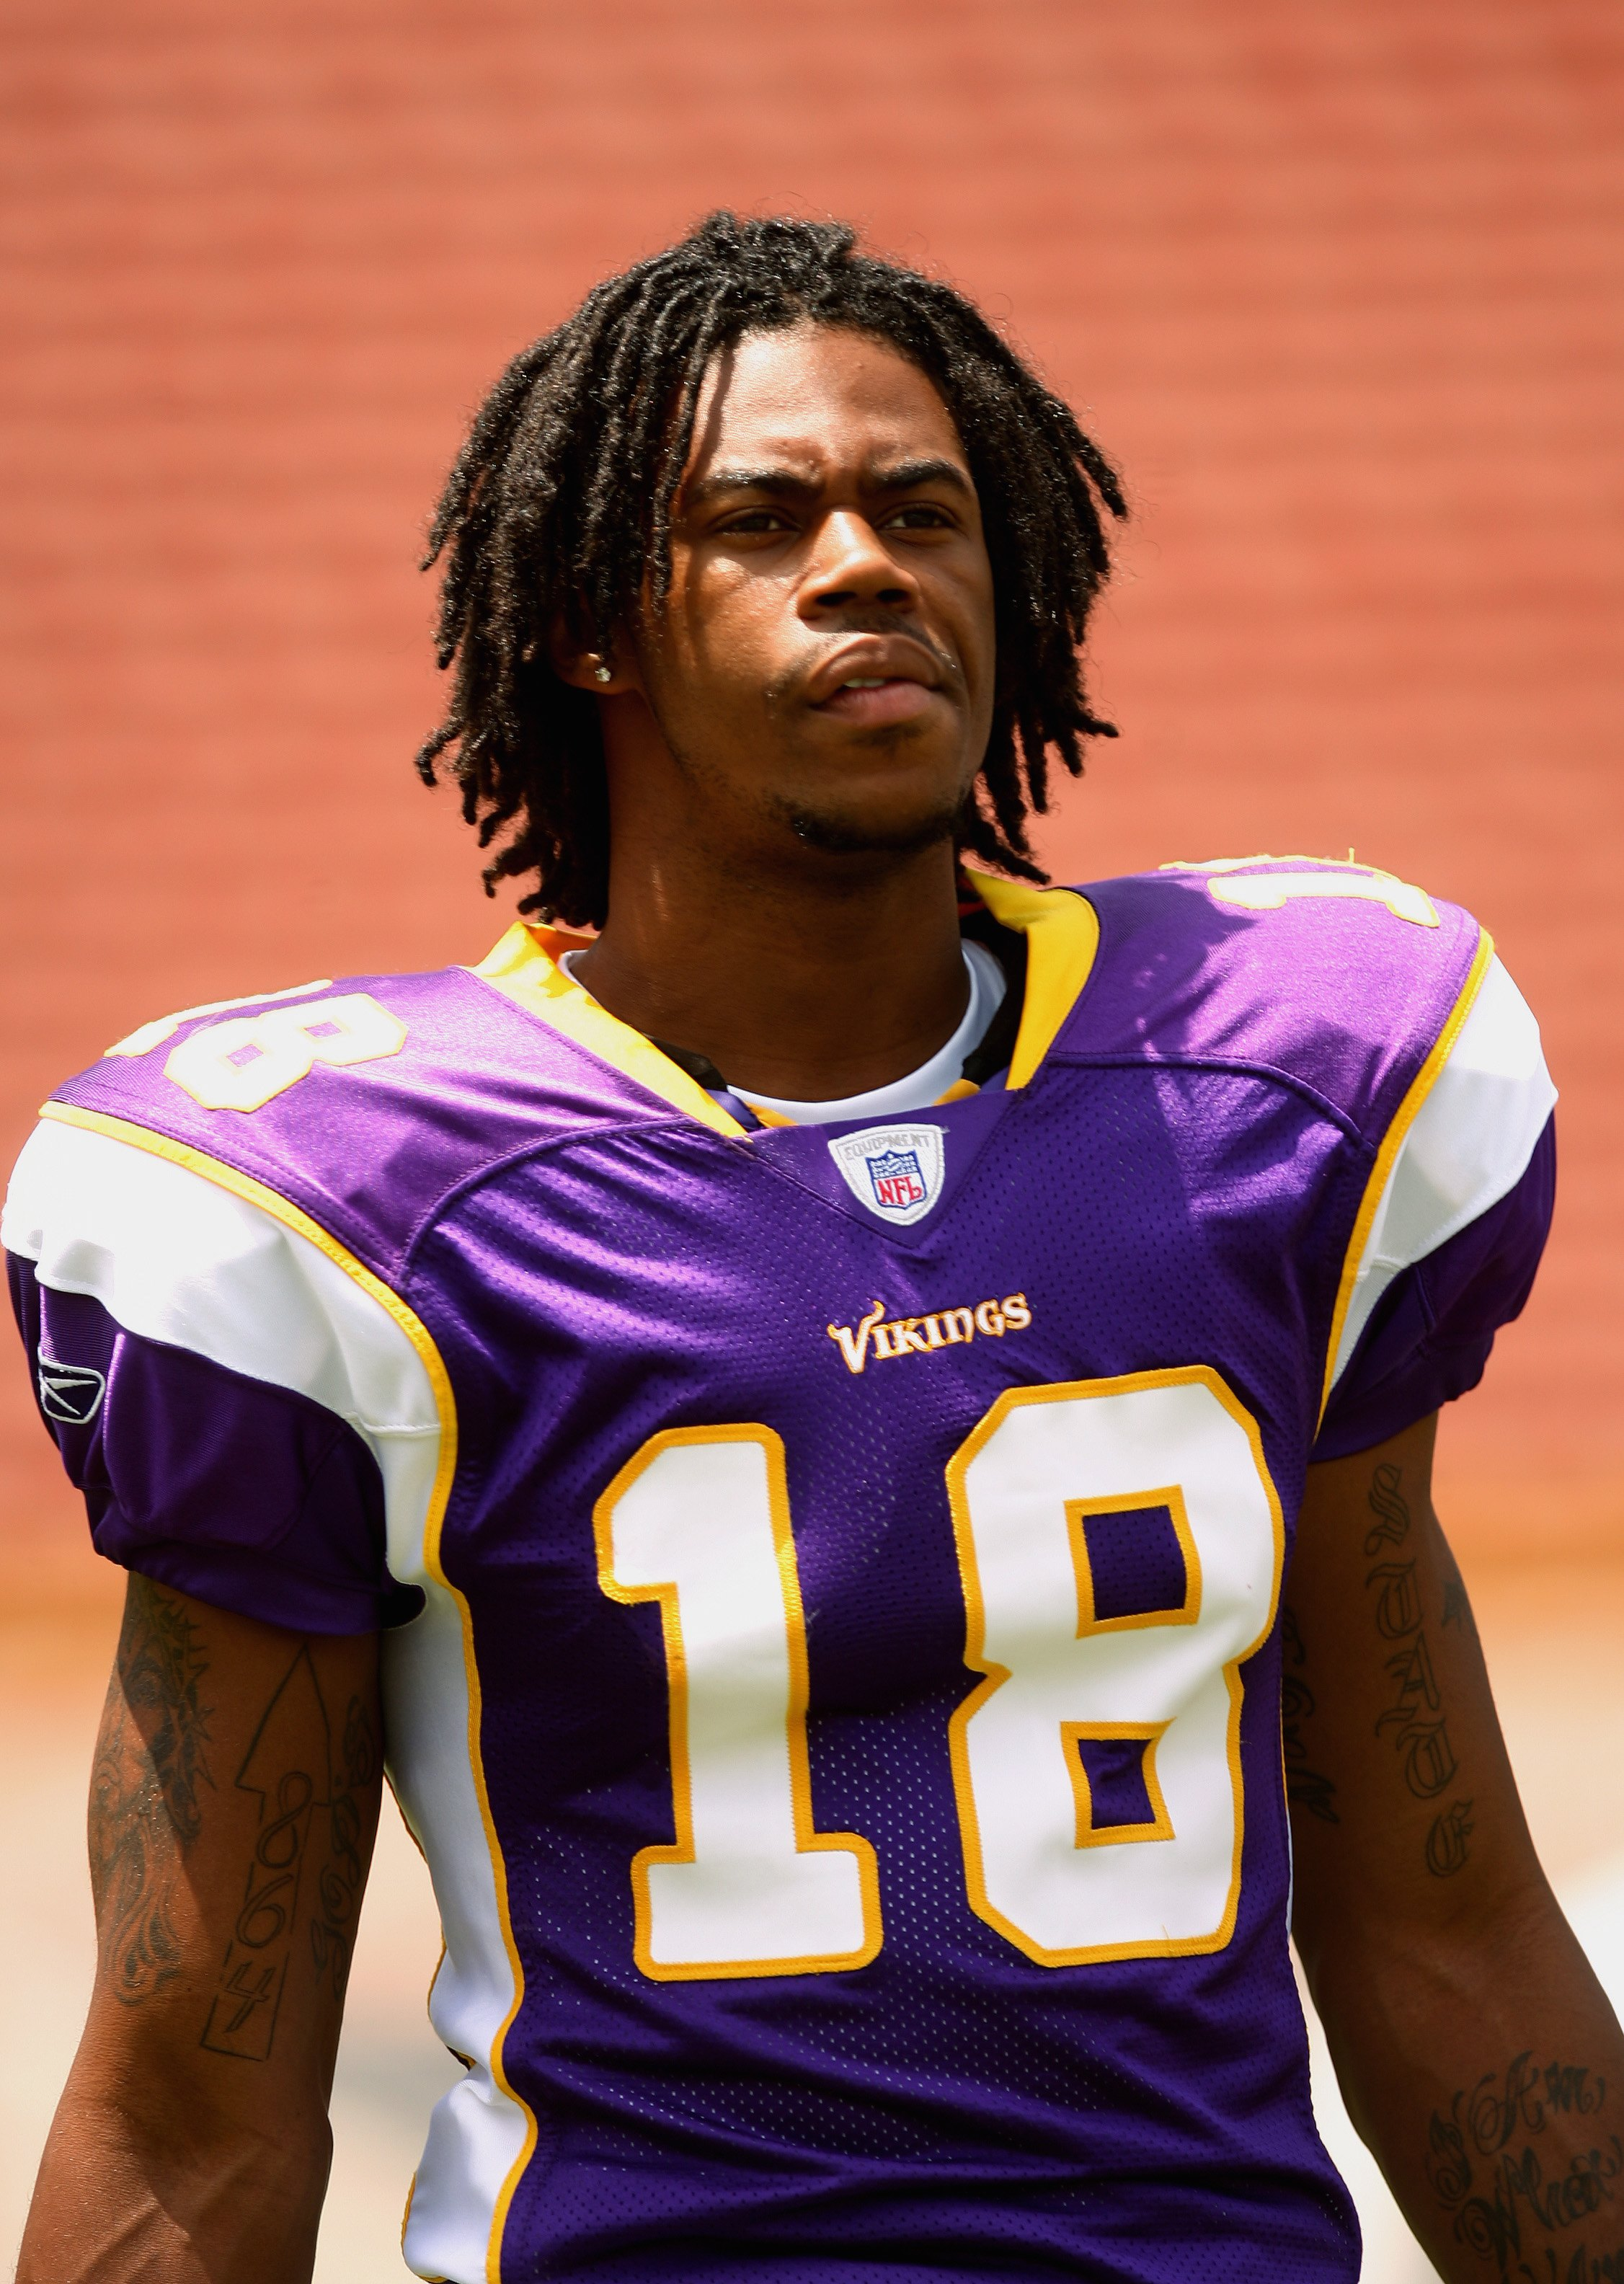 LOS ANGELES, CA - MAY 19: Wide receiver, Sidney Rice #18 of the Minnesota Vikings at the 2007 NFL Players Rookie Premiere on May 19, 2007 at the Los Angeles Memorial Coliseum in Los Angeles, California. (Photo by Nick Laham/Getty Images)